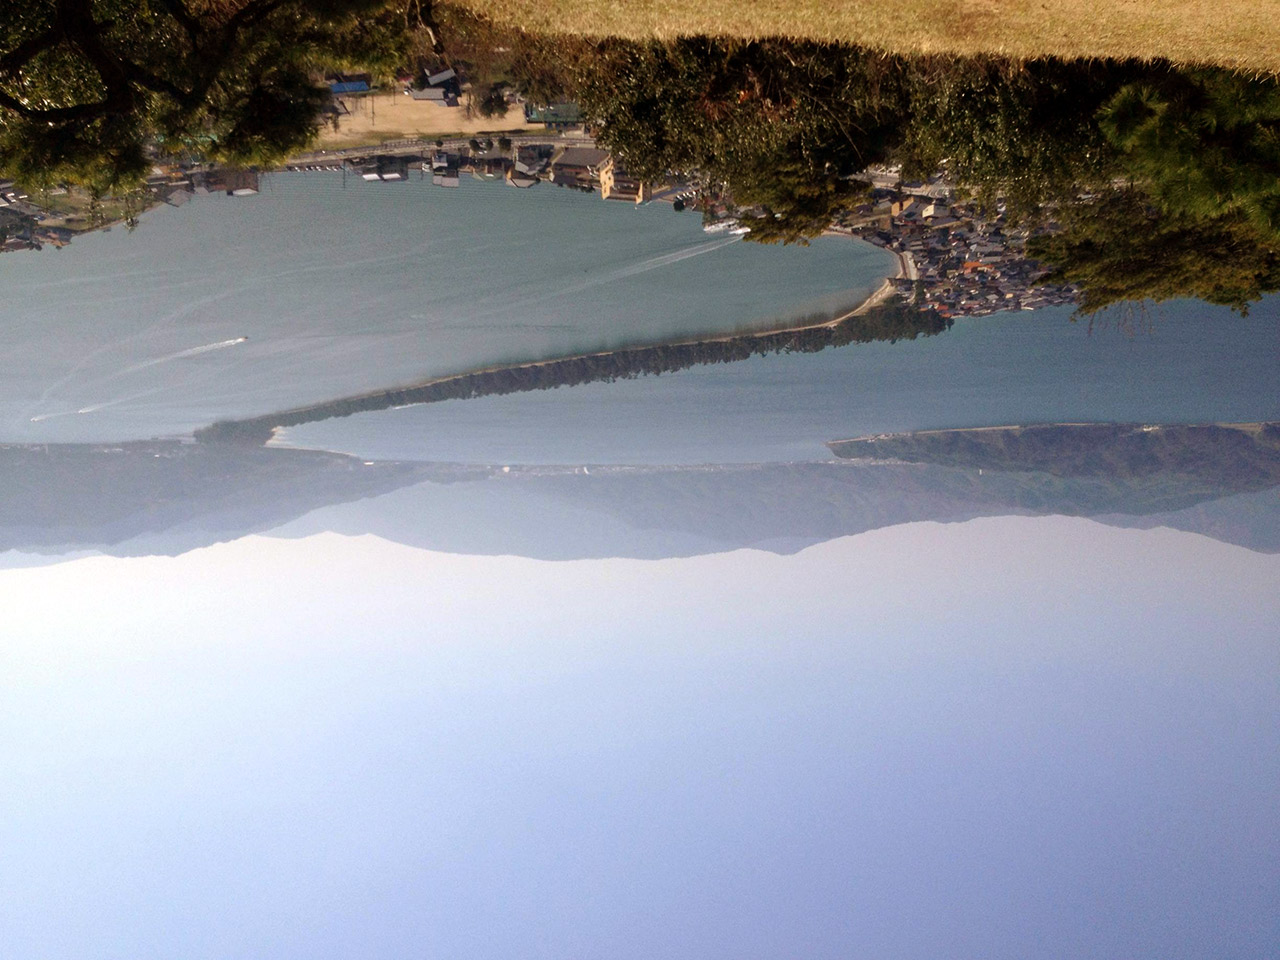 an intentionally upside down picture of a land bridge